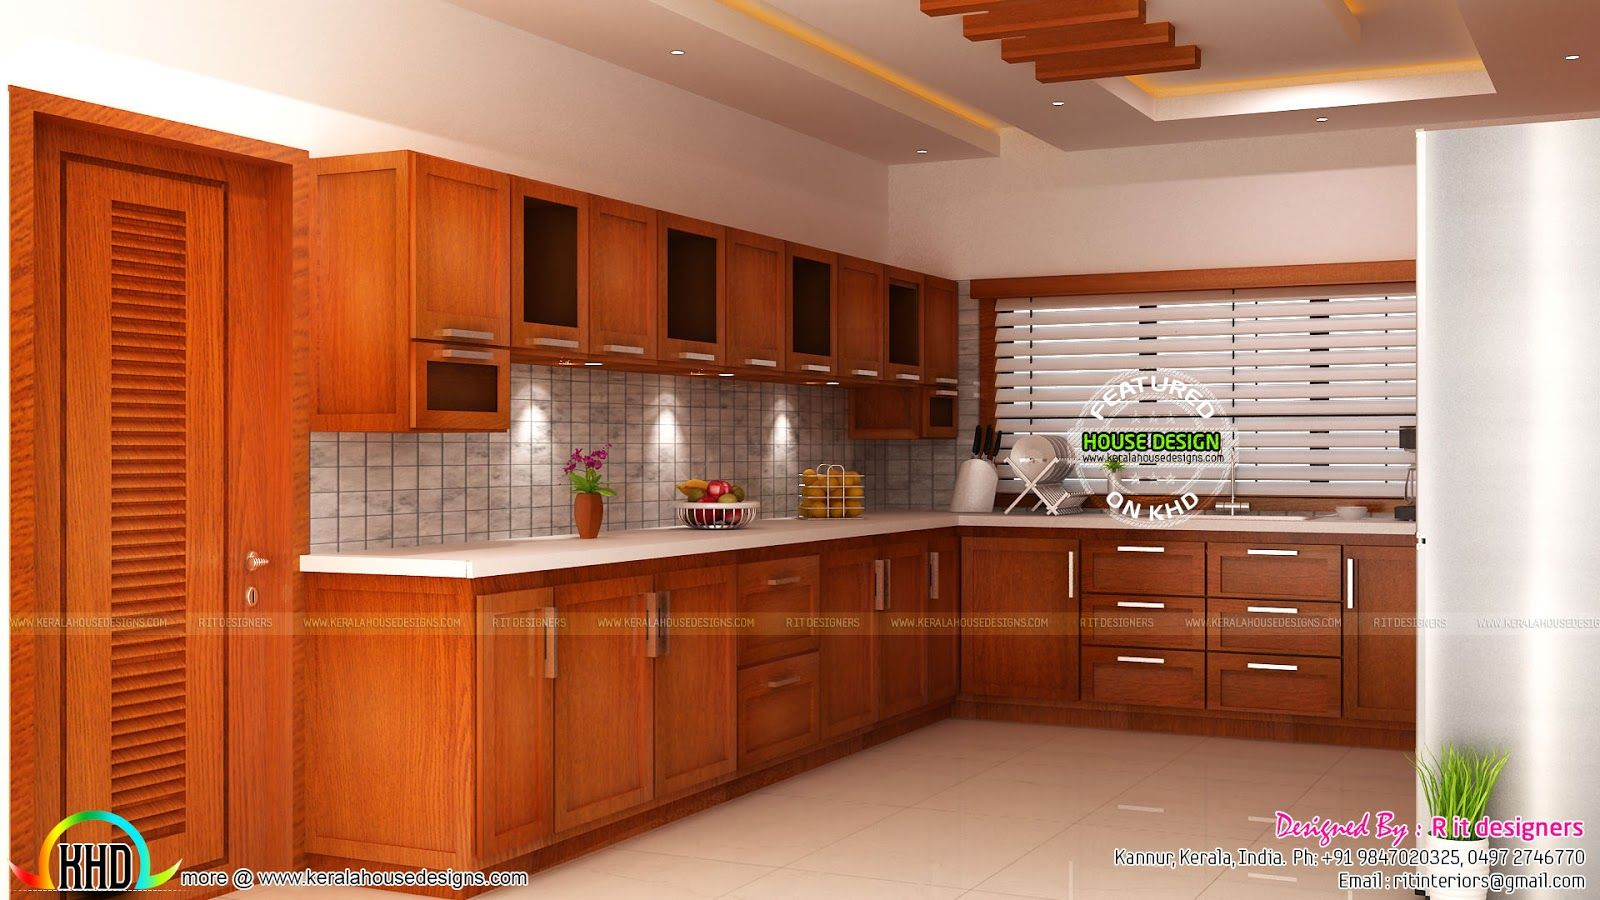 Kitchen Interior Design Ideas Kerala Style Decoomo